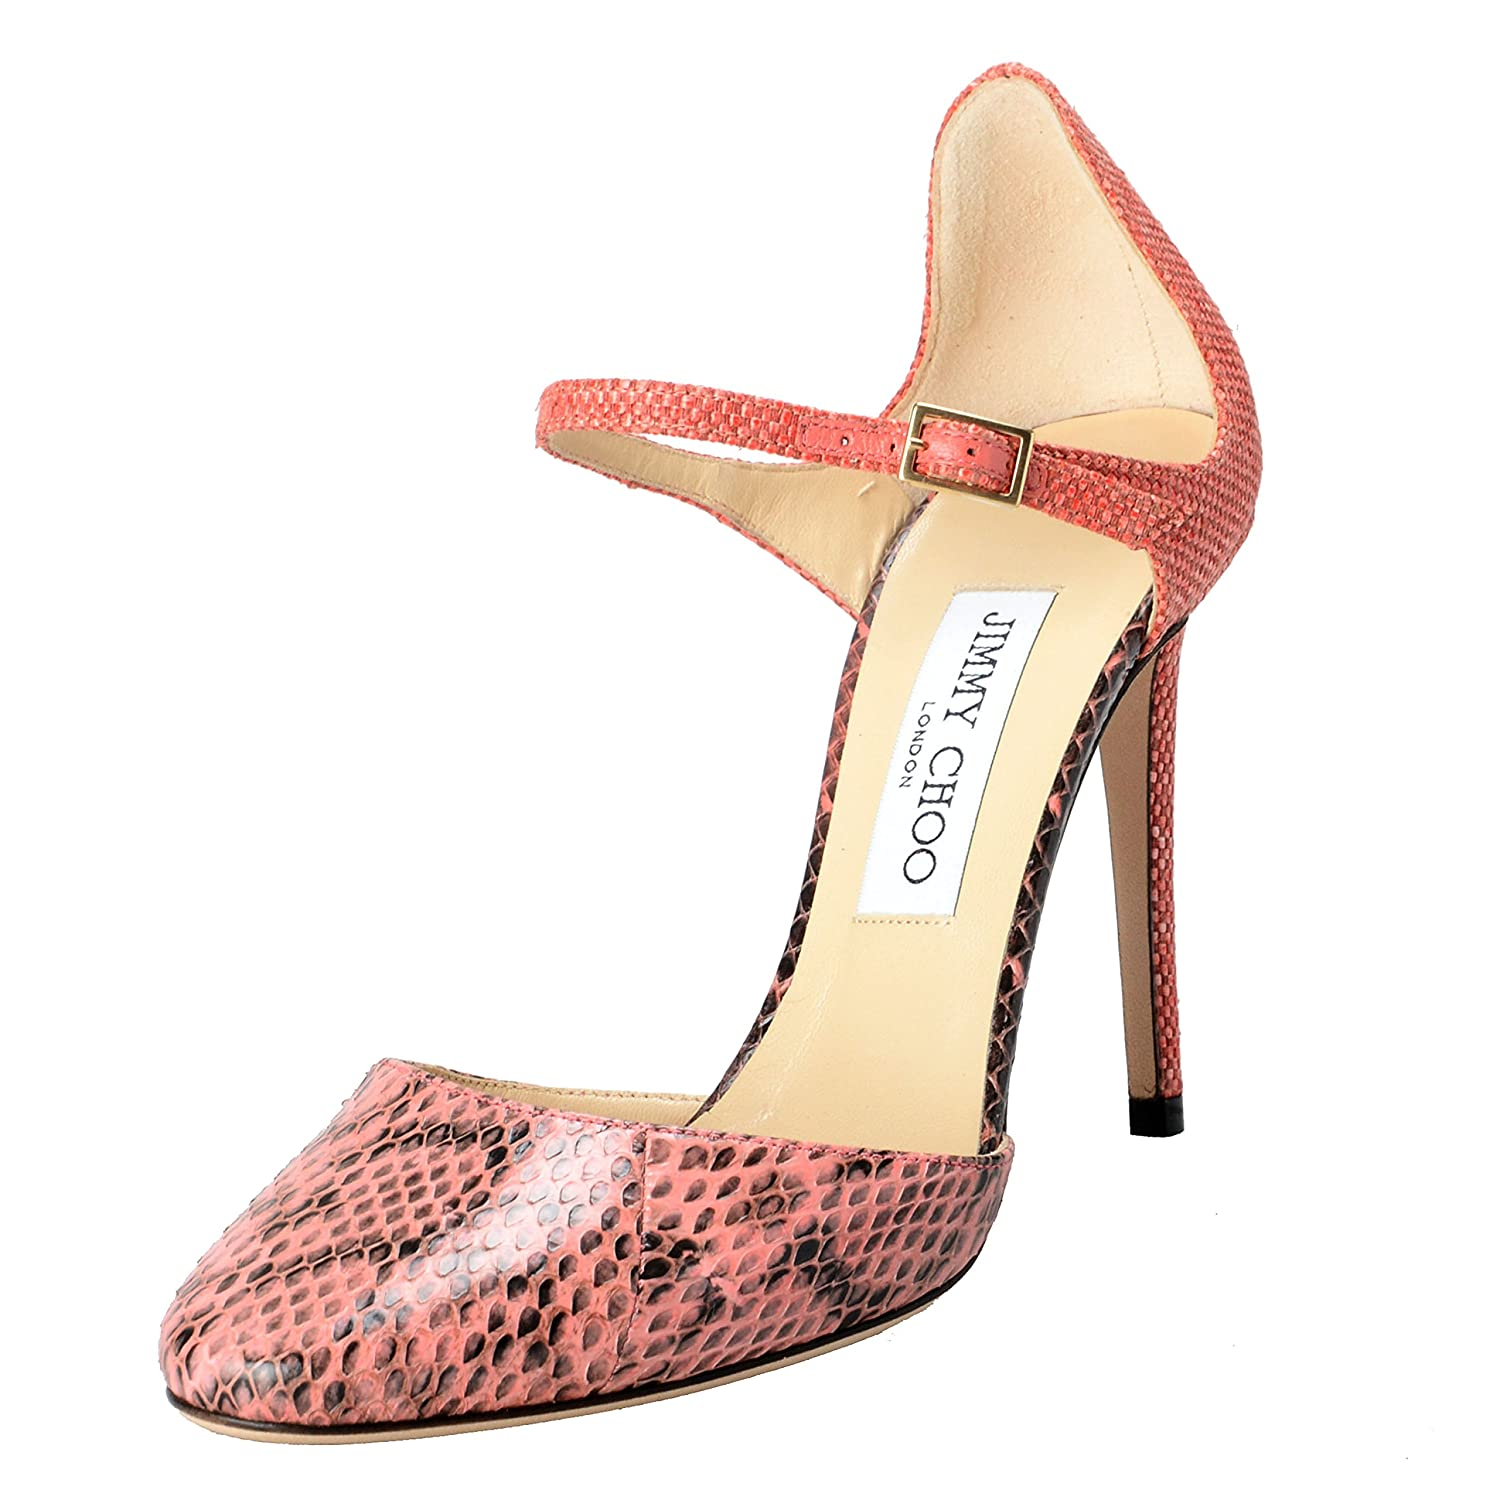 2ee145664a Amazon.com | JIMMY CHOO Women's Snake Skin Coral Pink Ankle Strap High  Heels Pumps Shoes | Pumps